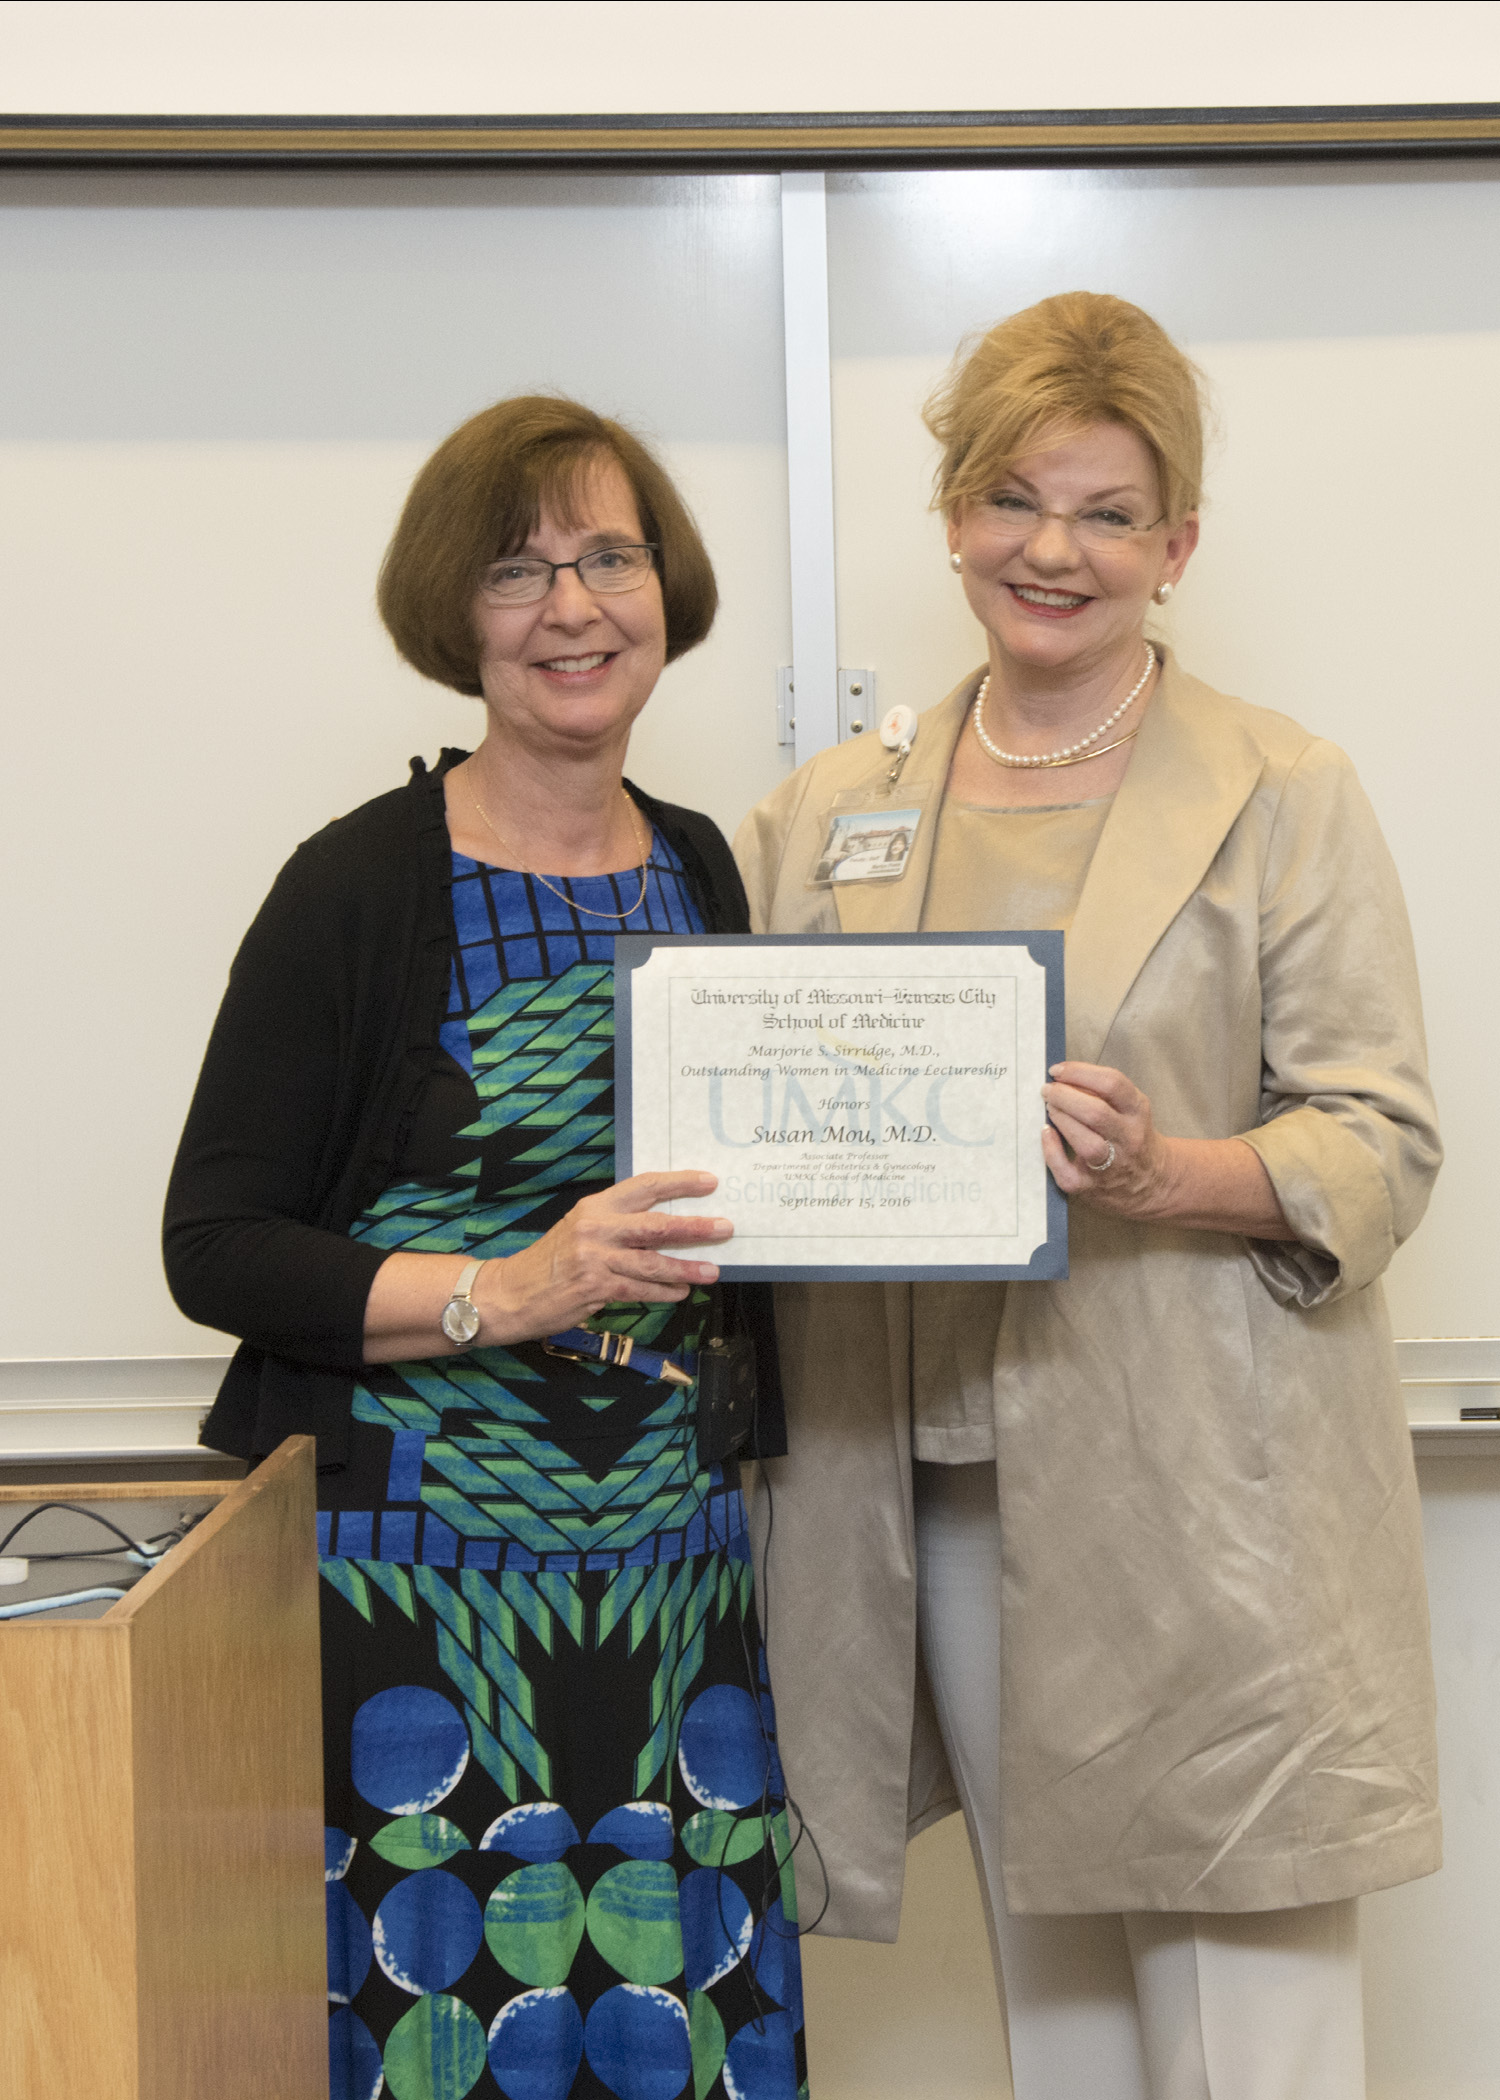 Susan Mou, M.D., delivered the 2006 Marjorie S. Sirridge (left), M.D., Outstanding Women in Medicine Lecture and was recognized afterward by Marilyn M. Pesto, director of the Sirridge Office of Medical Humanities and Bioethics.